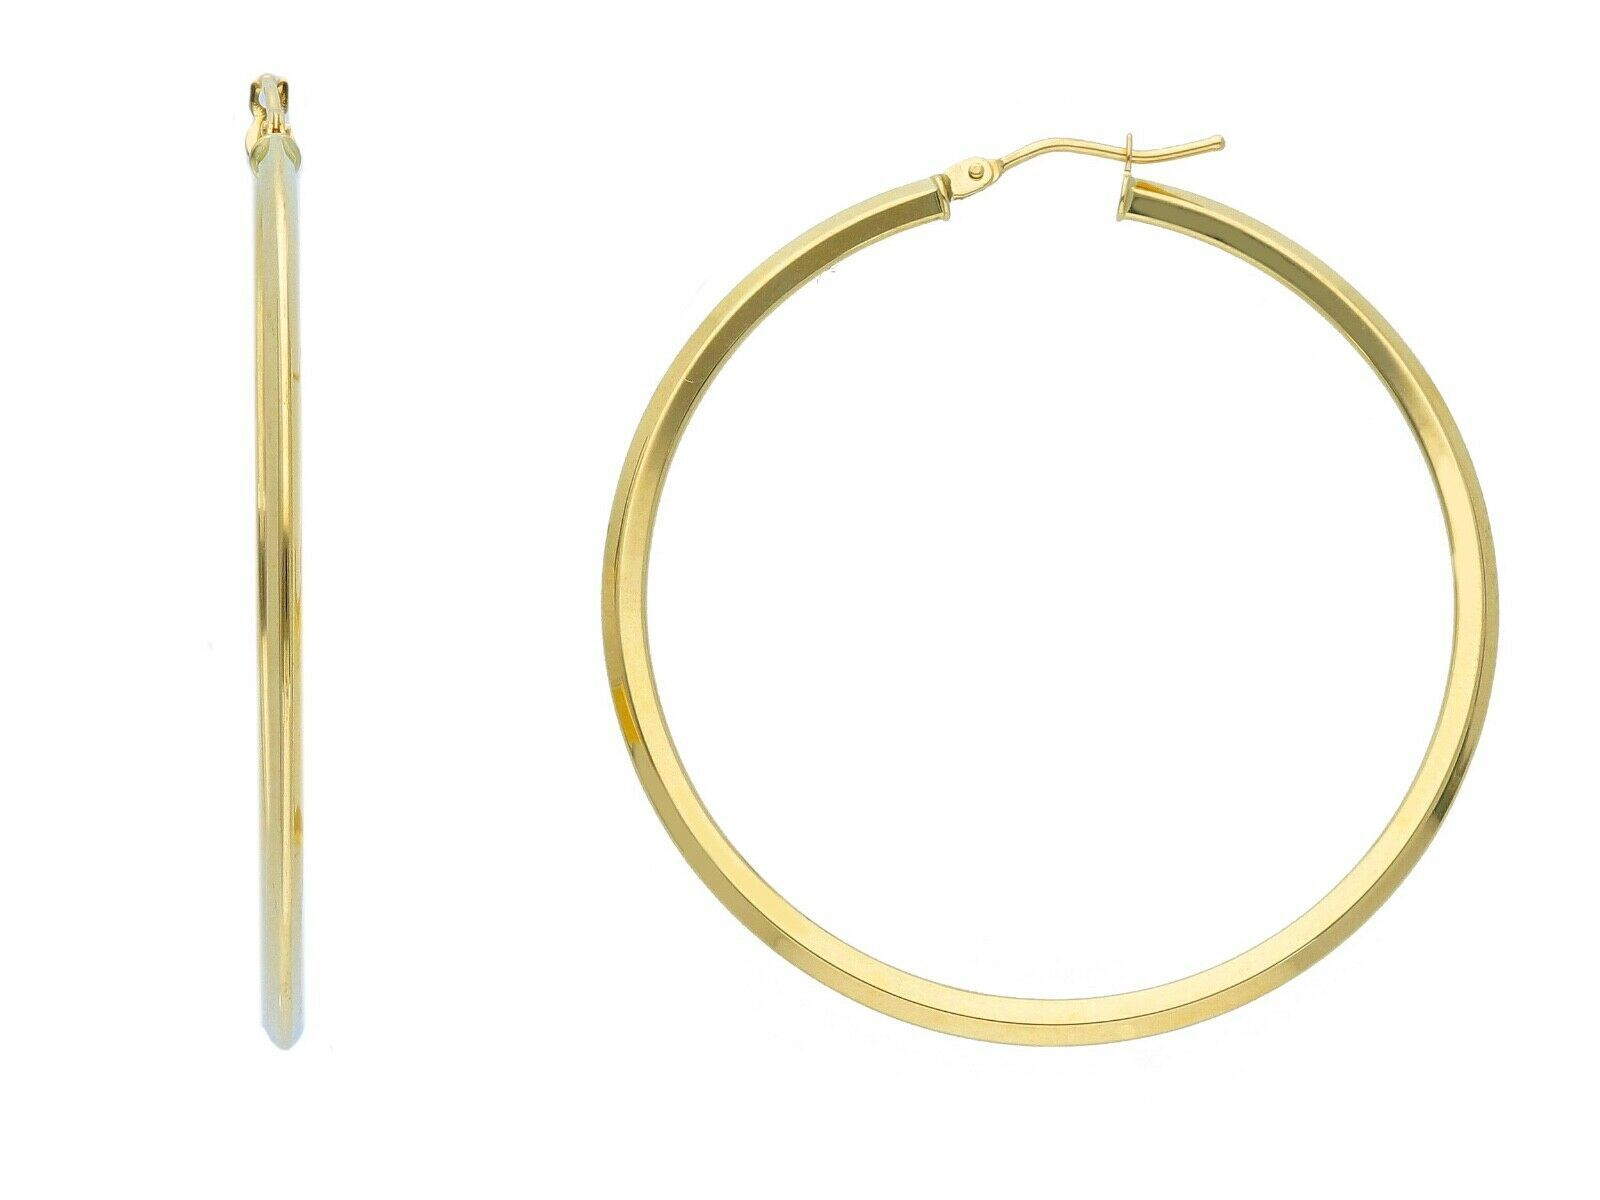 18K YELLOW GOLD CIRCLE EARRINGS DIAMETER 40 MM WITH RHOMBUS TUBE, MADE IN ITALY